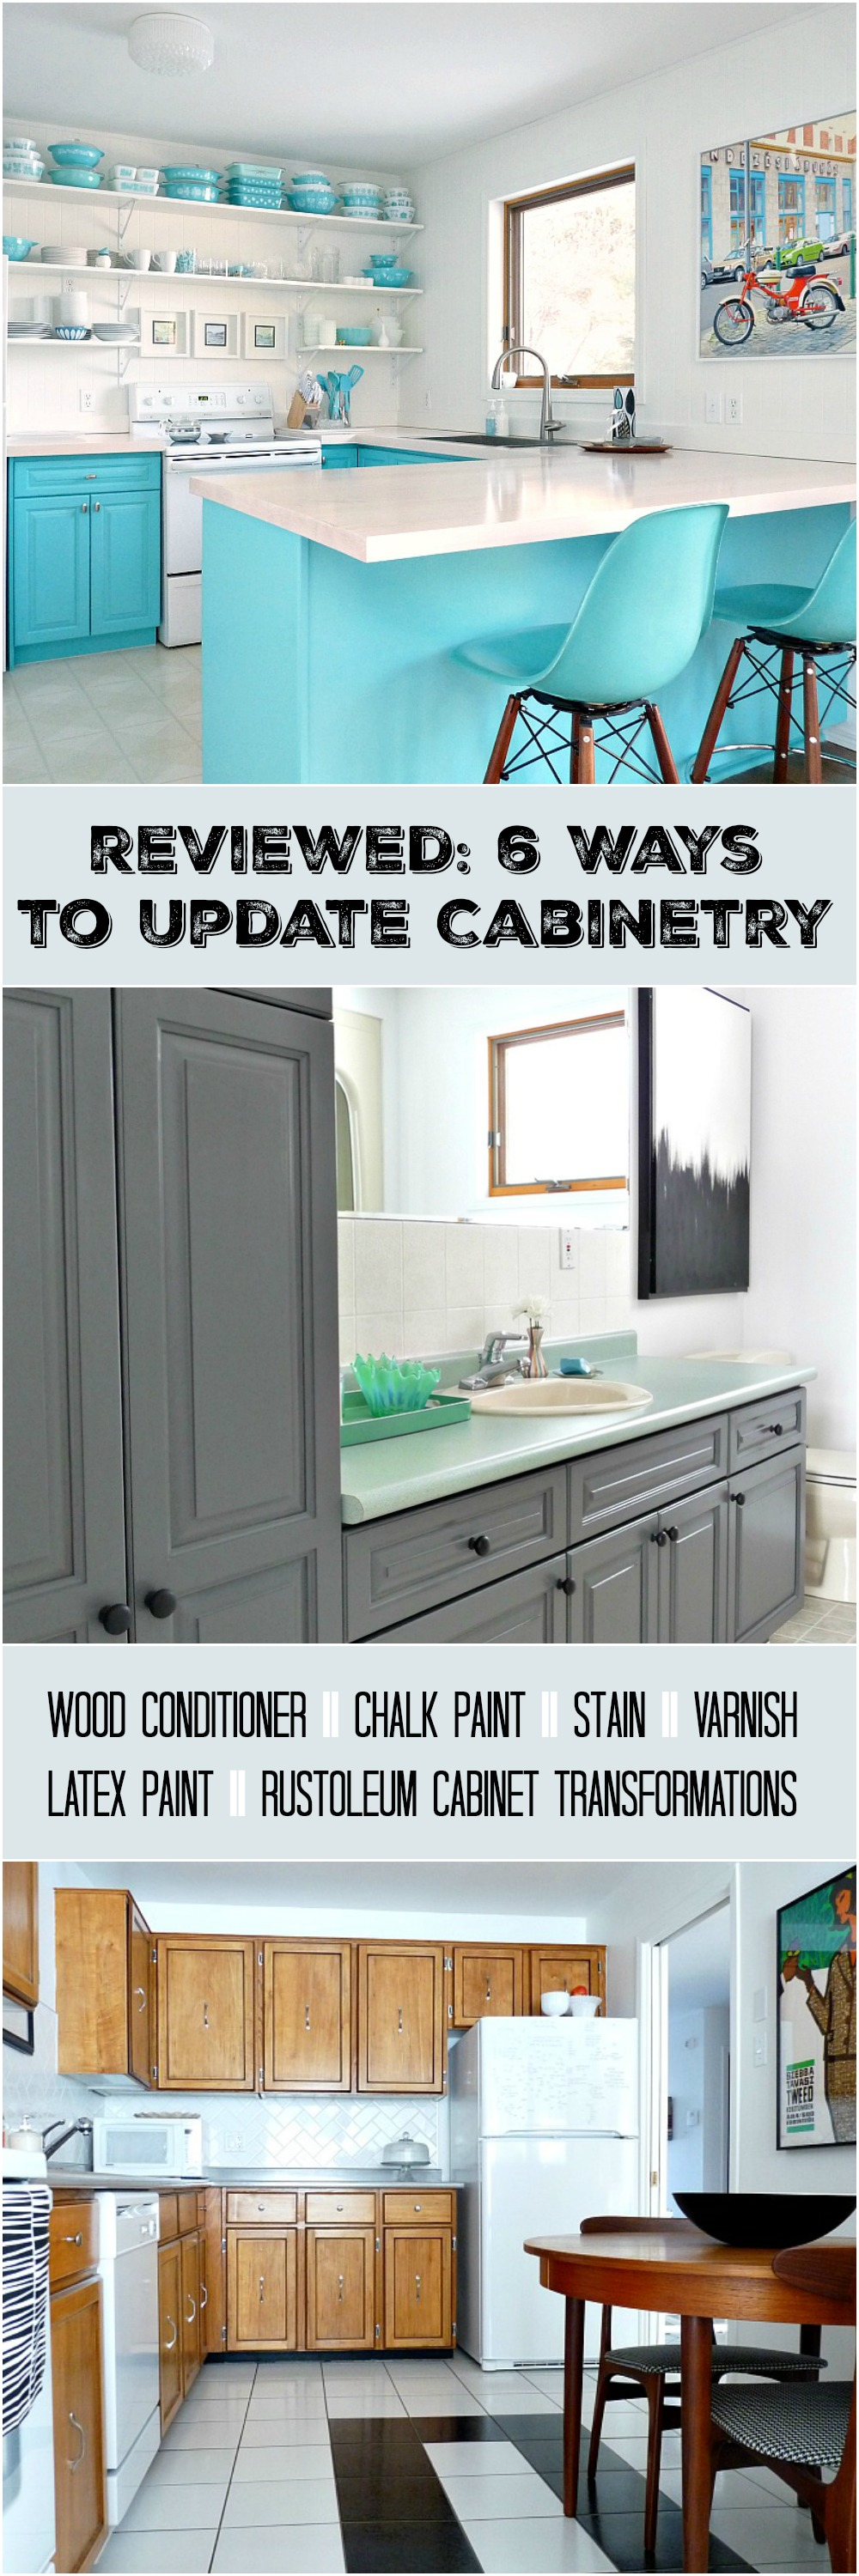 Cabinet Refinishing 101: Latex Paint vs. Stain vs. Rust-Oleum ...